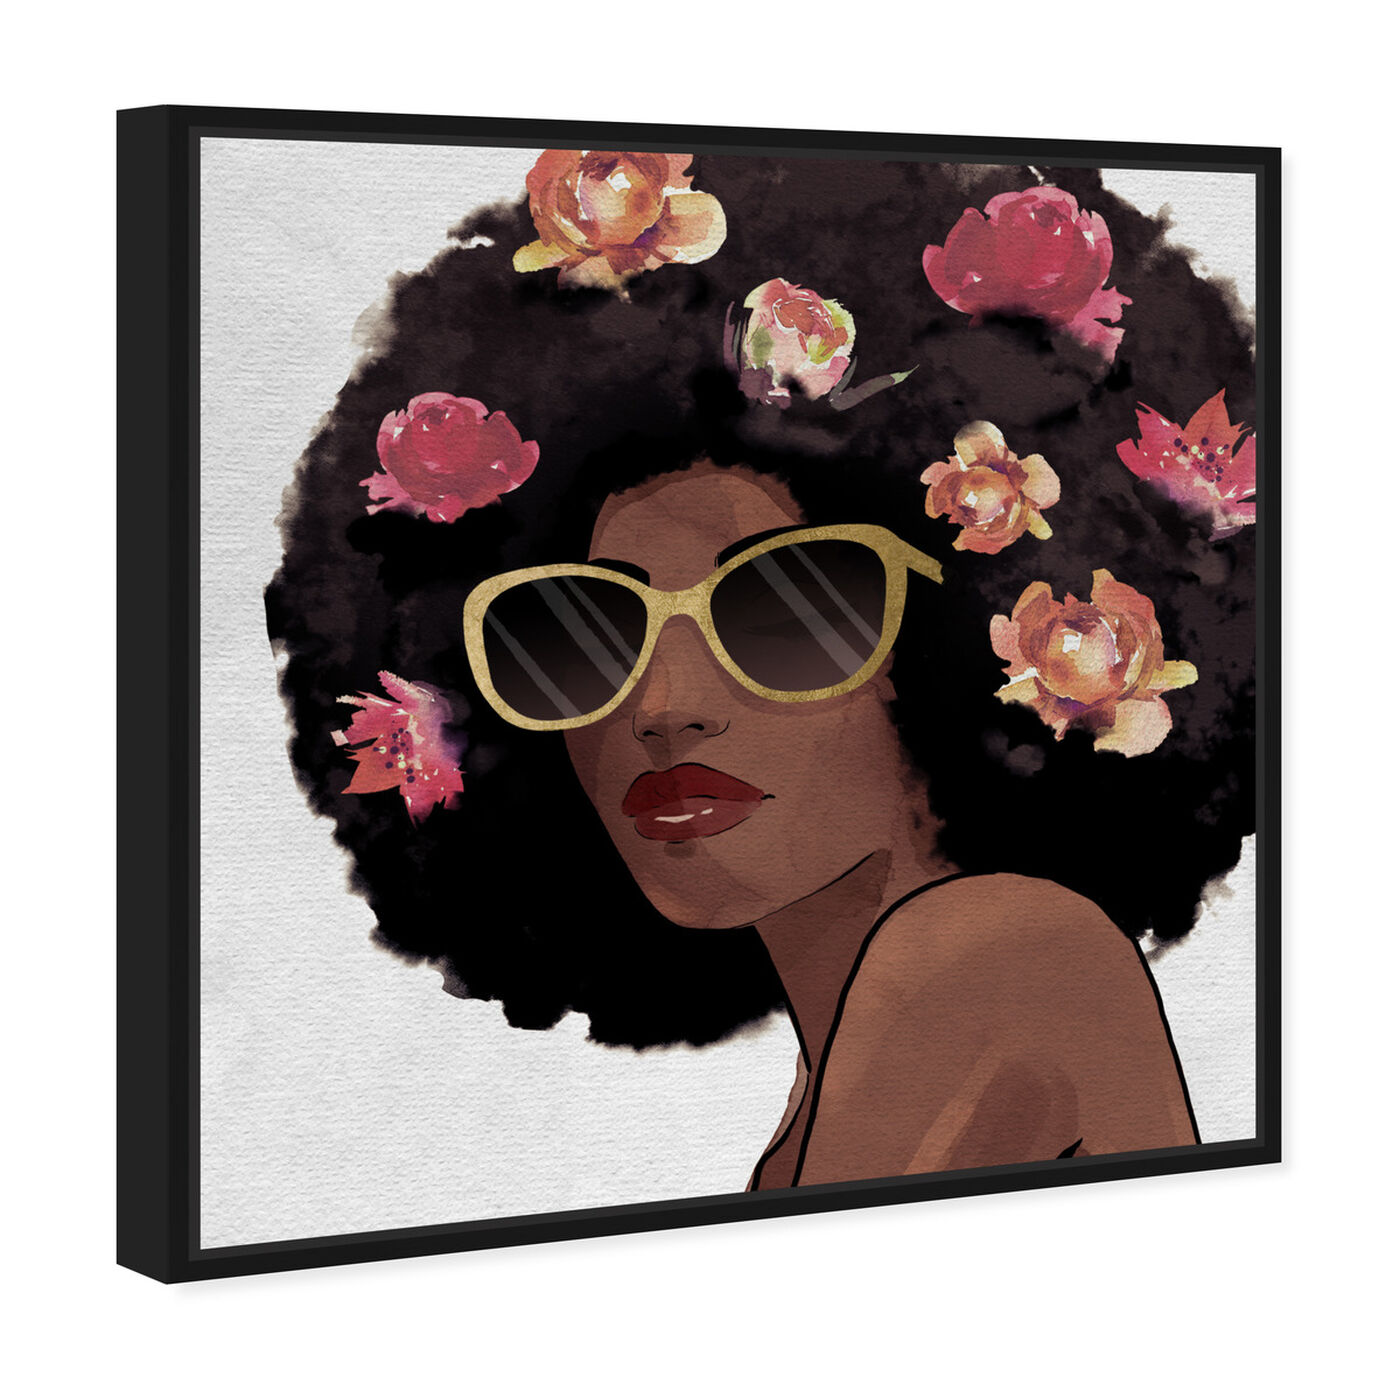 Angled view of Flowers to Inspire Shades featuring fashion and glam and portraits art.